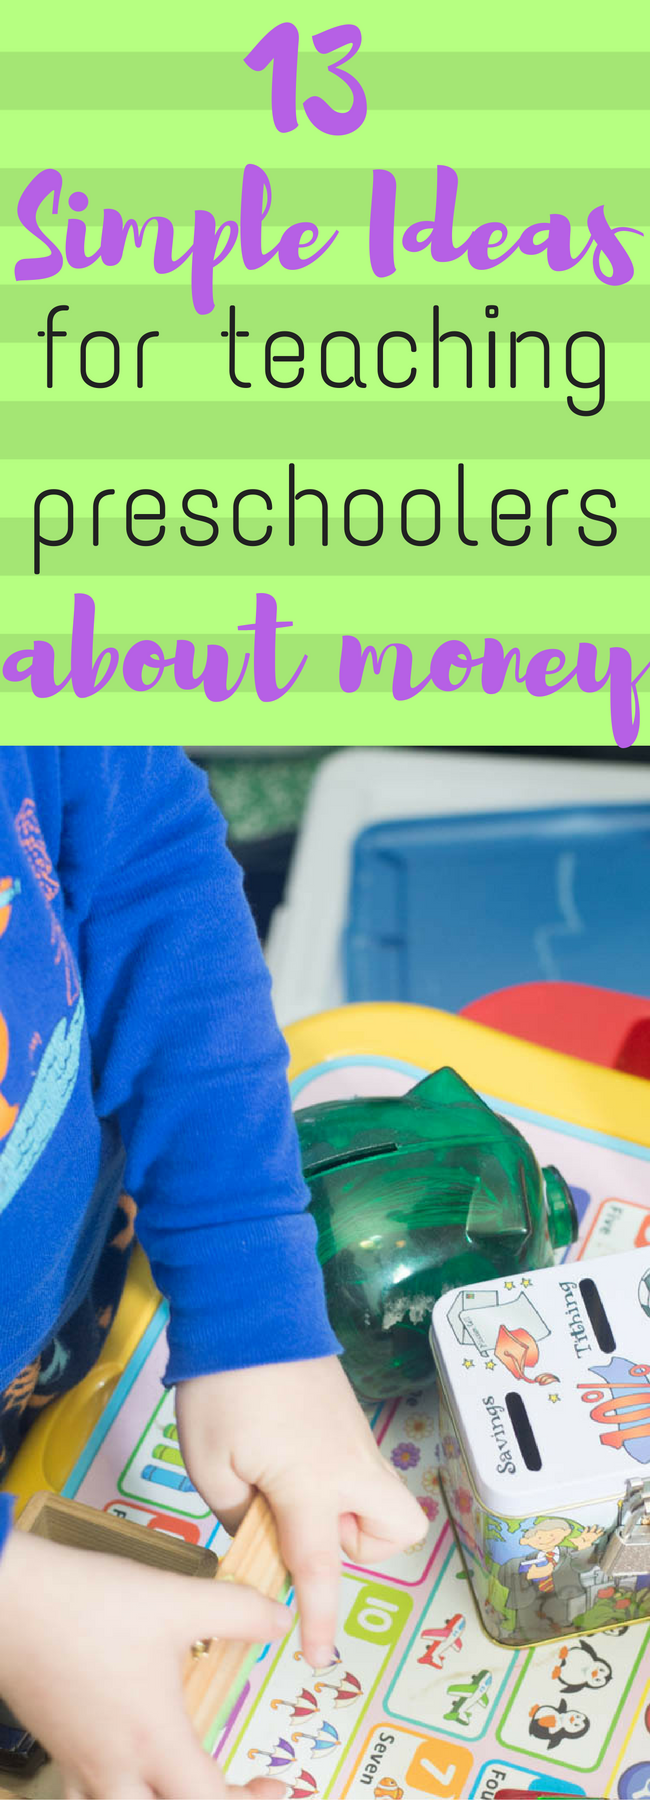 Preschool learning / preschool math / teach preschooler about money / money management /money tips / frugal living / life lessons / preschool